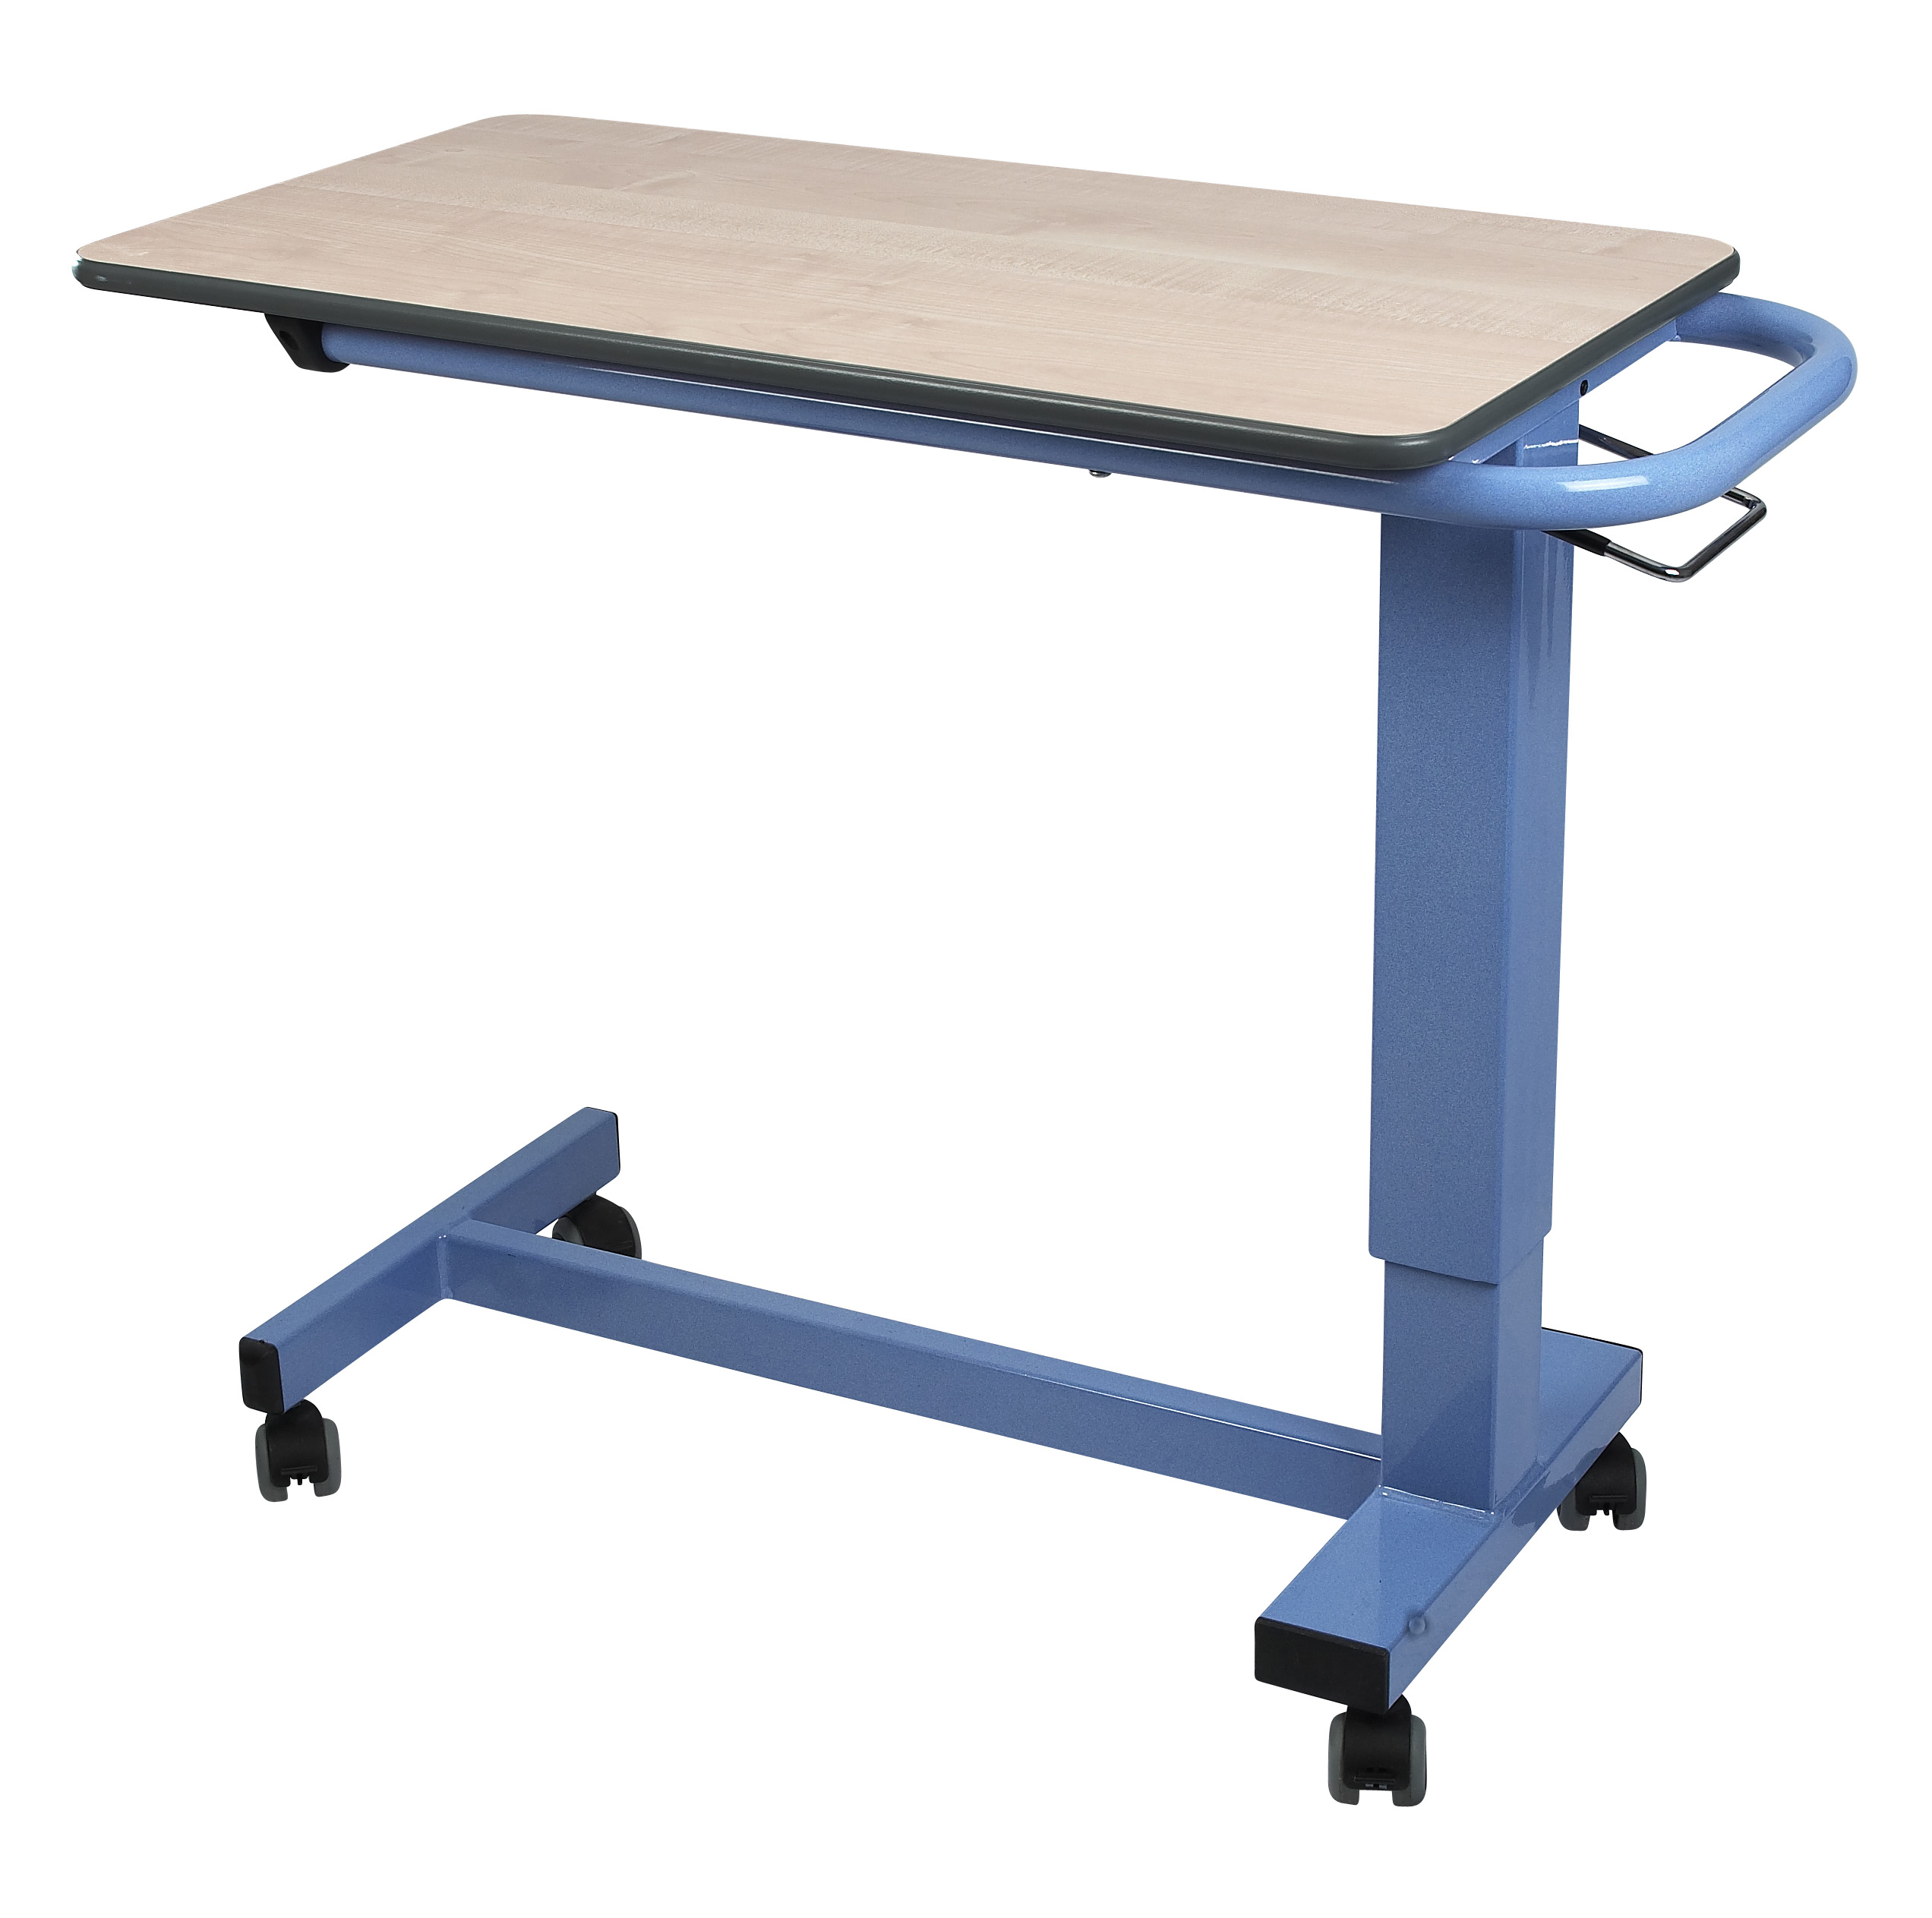 Avon 8 0 Cantilever Table Living Made Easy